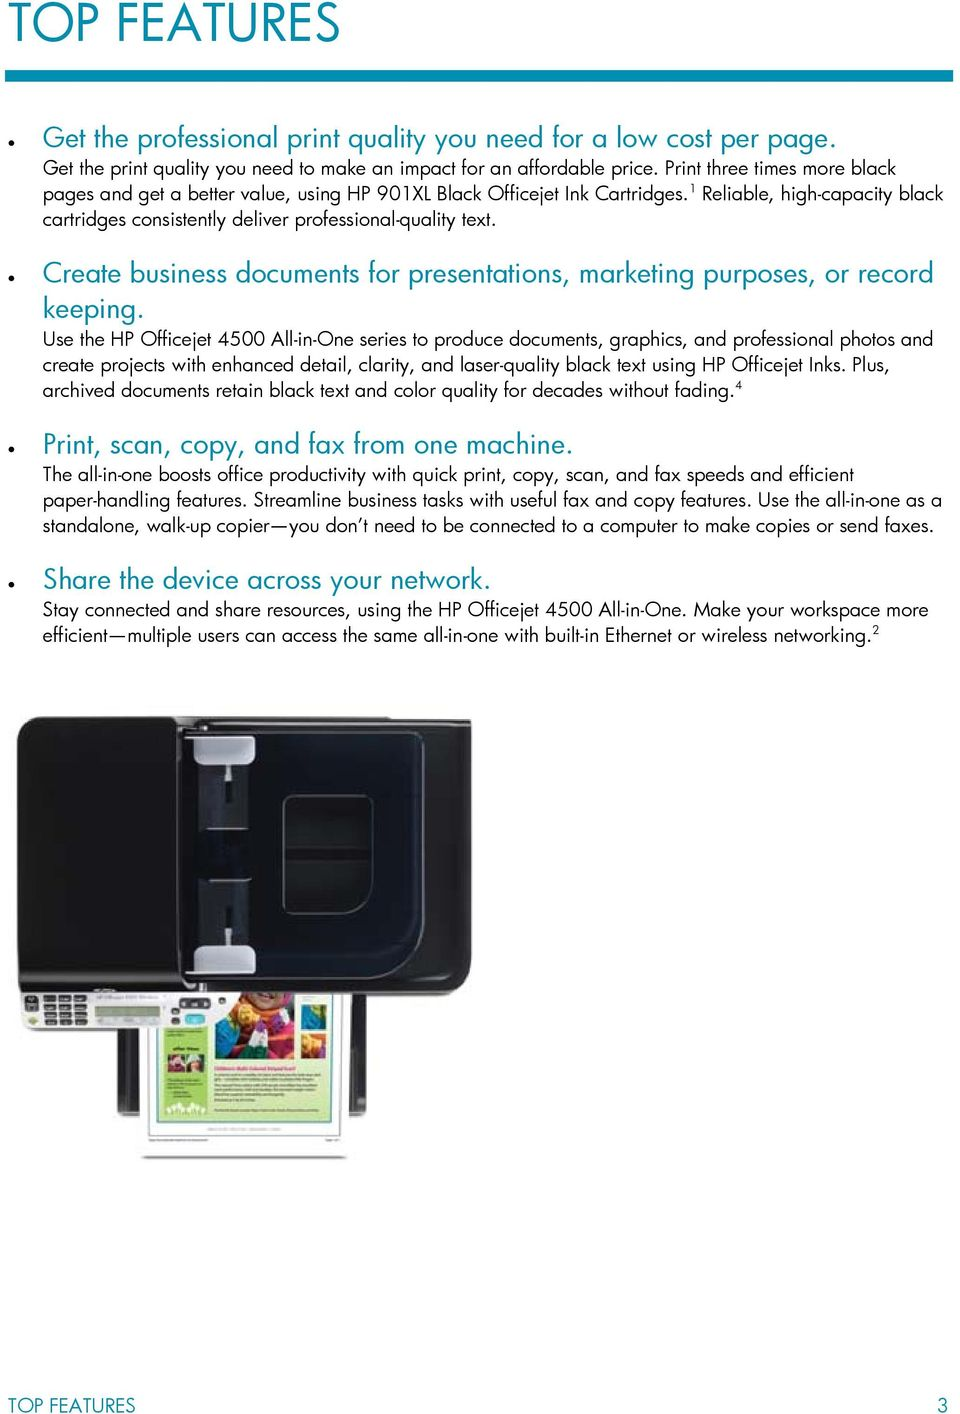 Create business documents for presentations, marketing purposes, or record keeping.